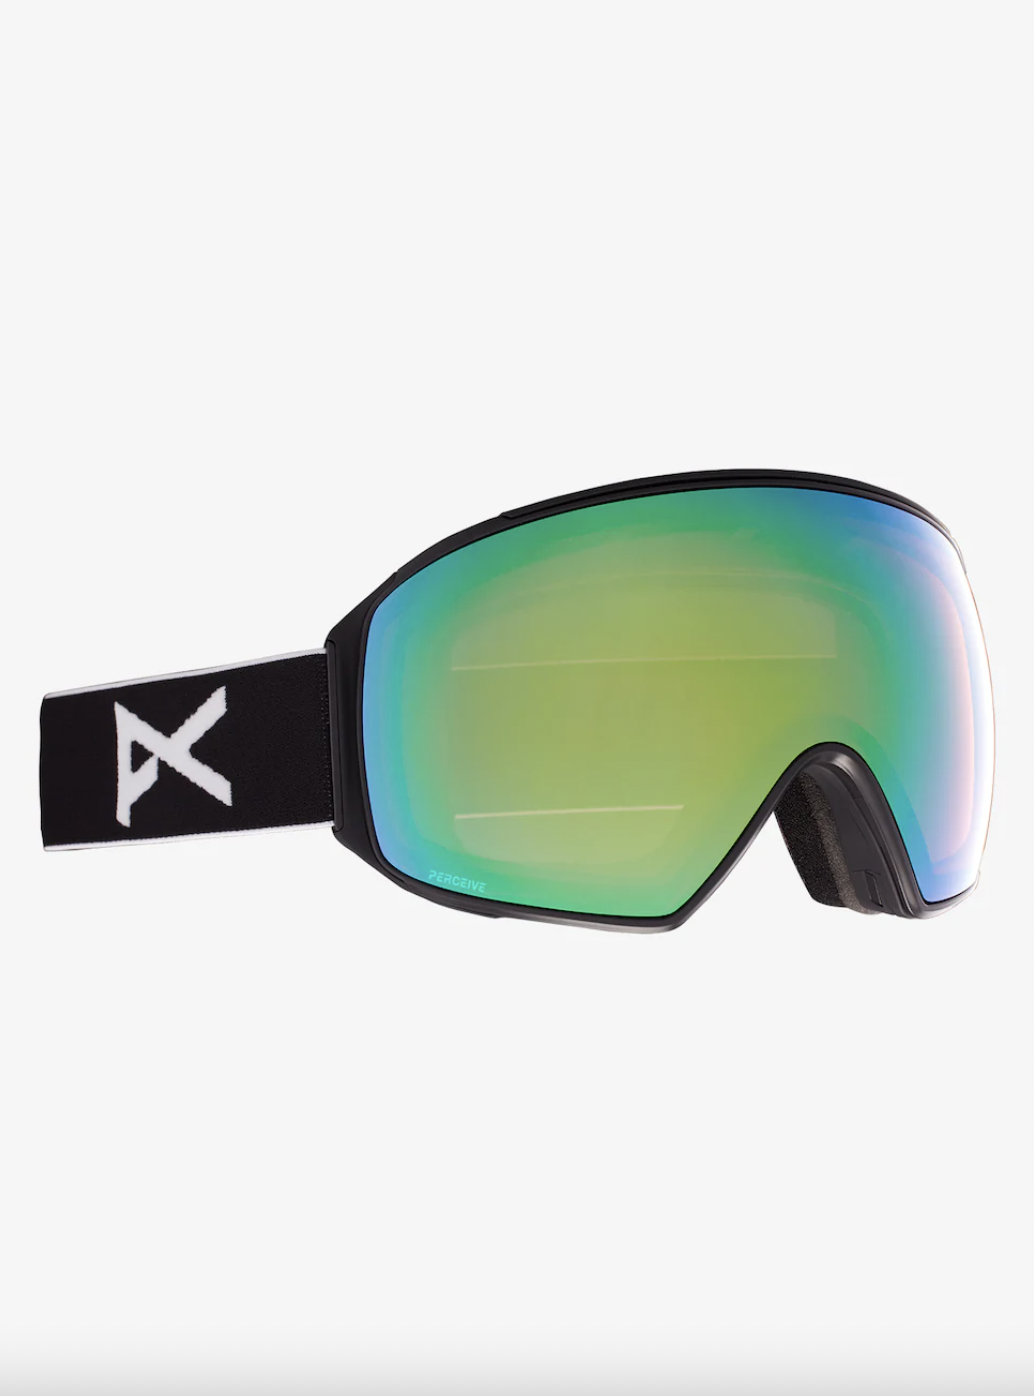 Anon M4 Toric ASIAN FIT w/Spare Lens Snowboard Goggle